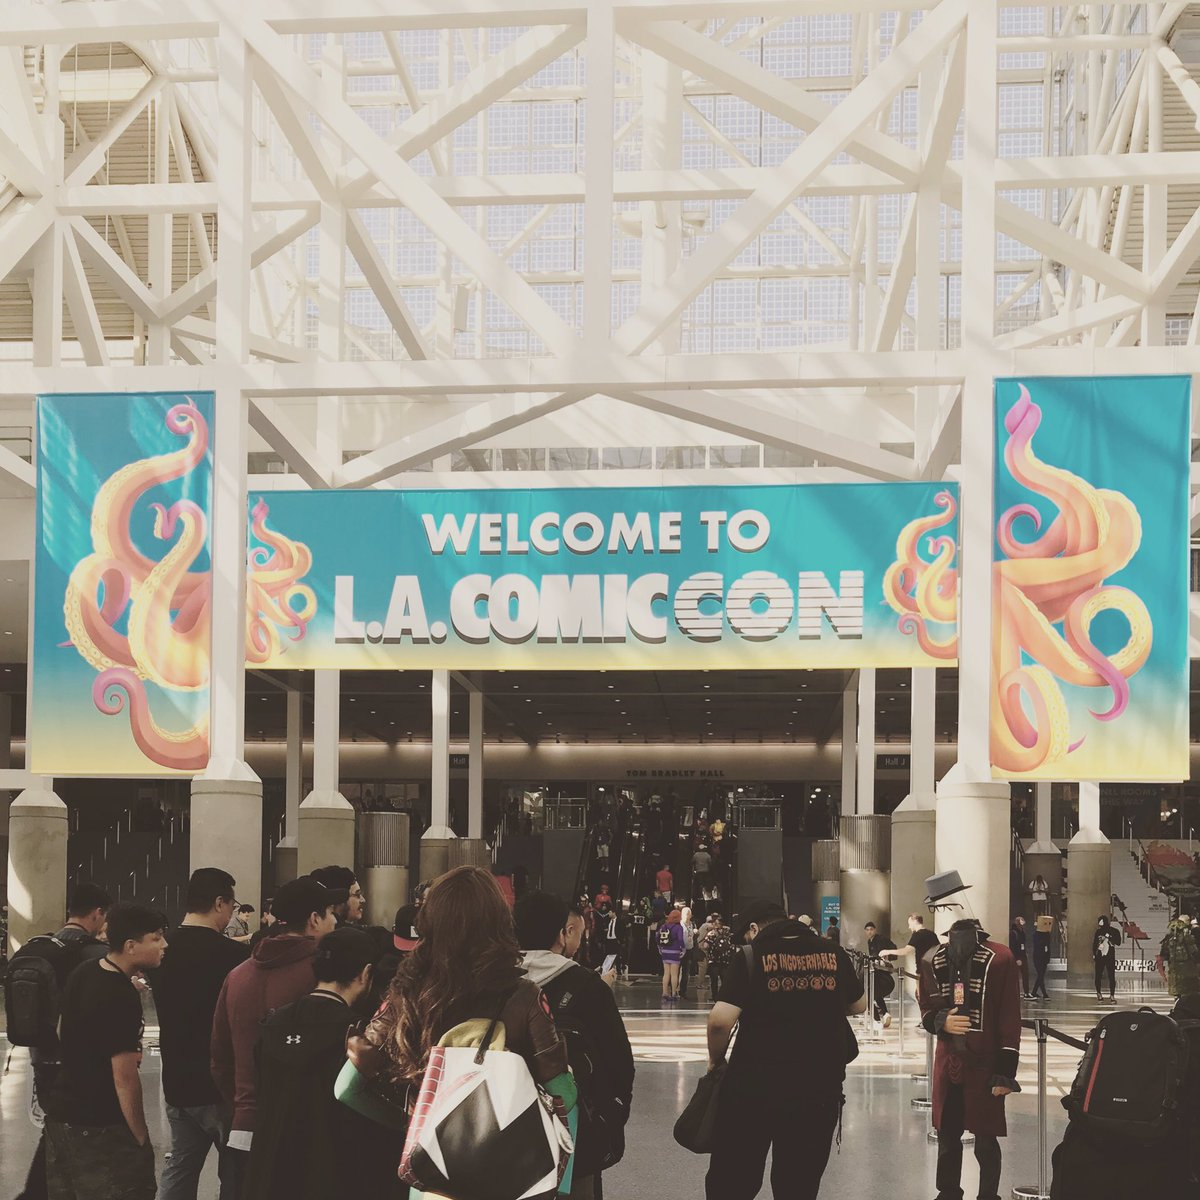 Hey LA COMIC CON! Thanks for inviting us to explore 'The Game Makers' series with aspiring game designers and directors today! It was great to be part of the busy event! #thegamemakers #comiccon #storyingames #losangeles #gamedev #gamedesign